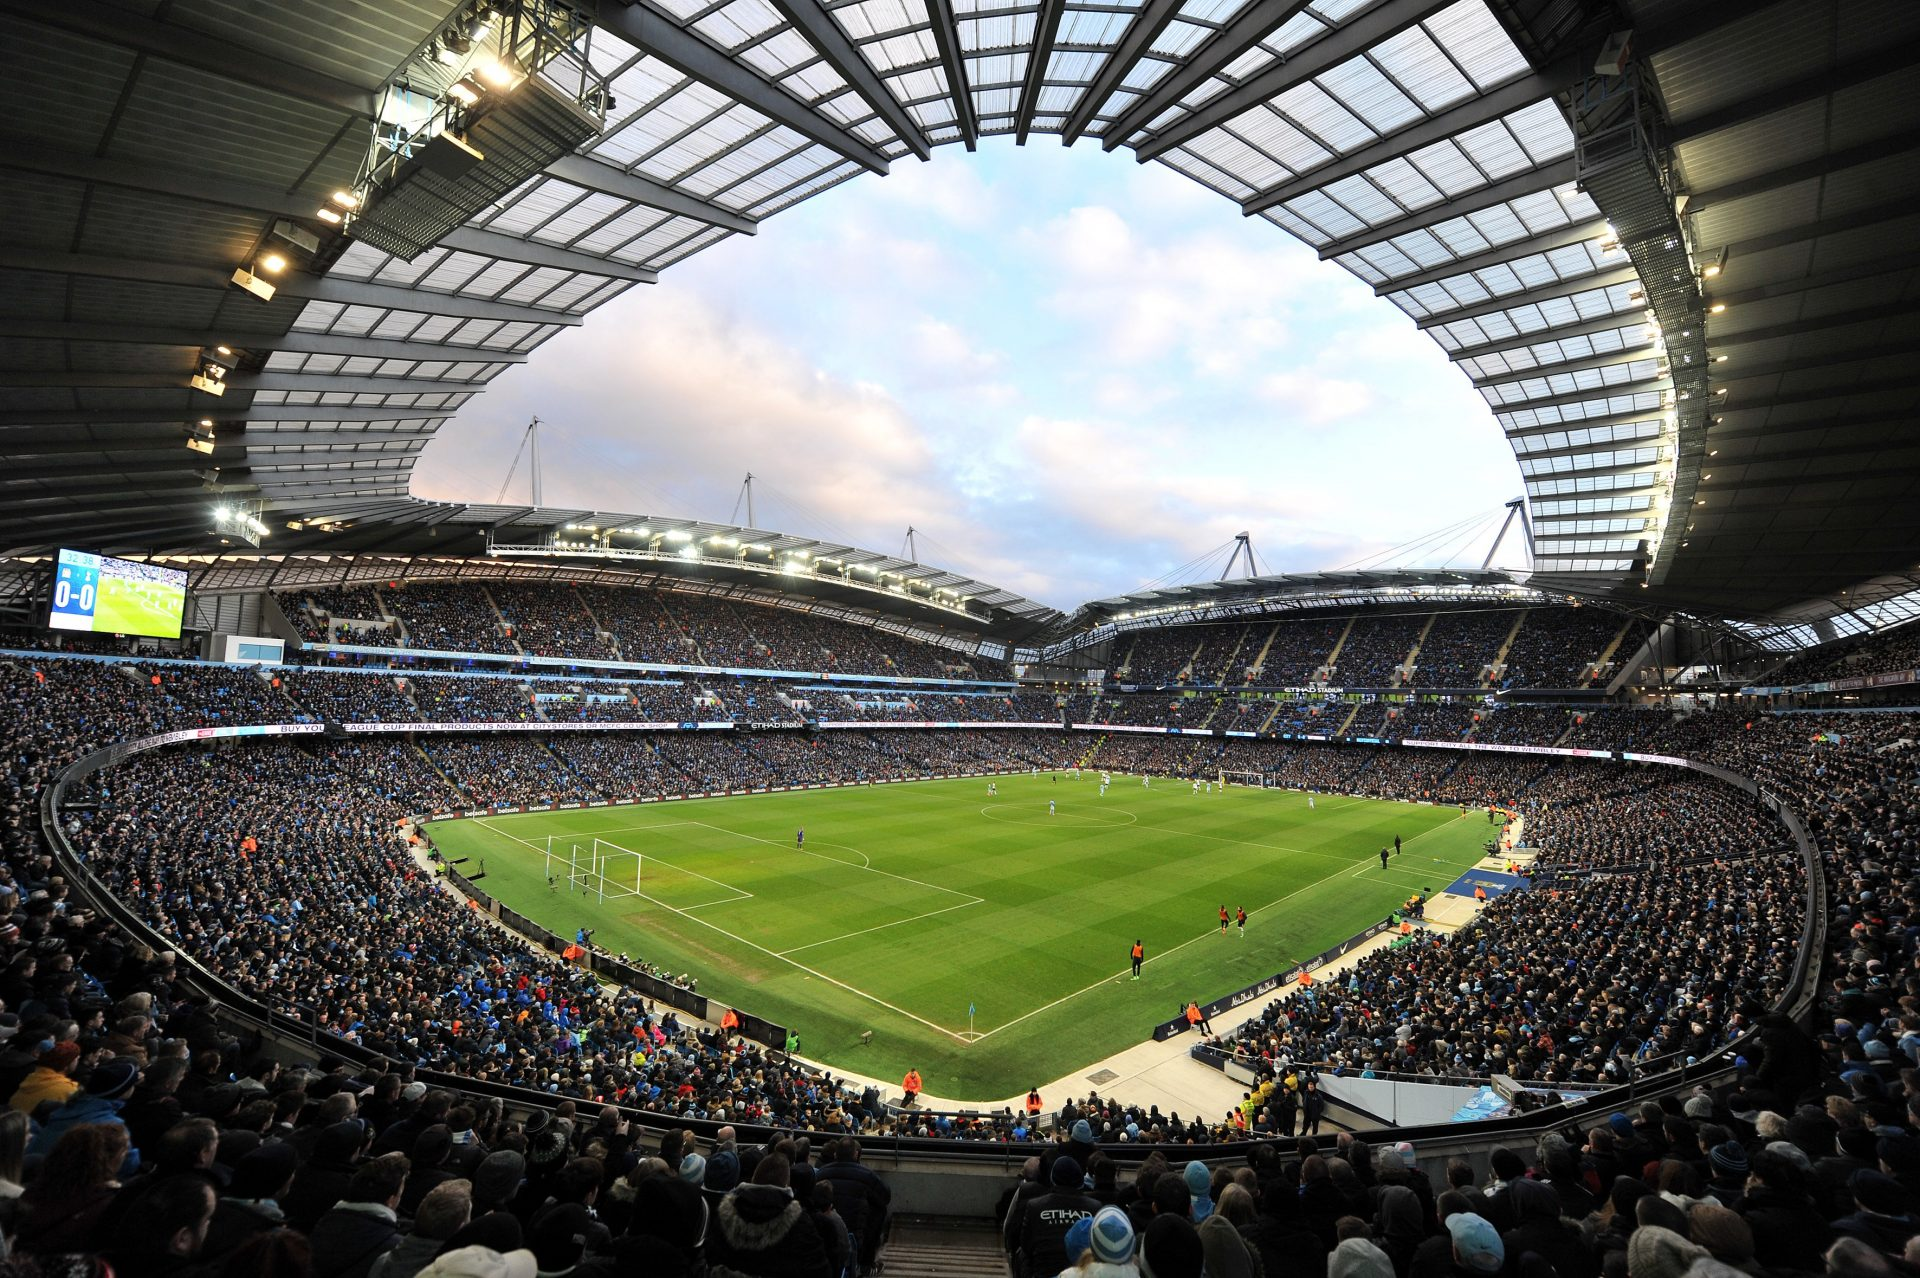 Pphoto of Manchester City Football Club's Etihad Stadium